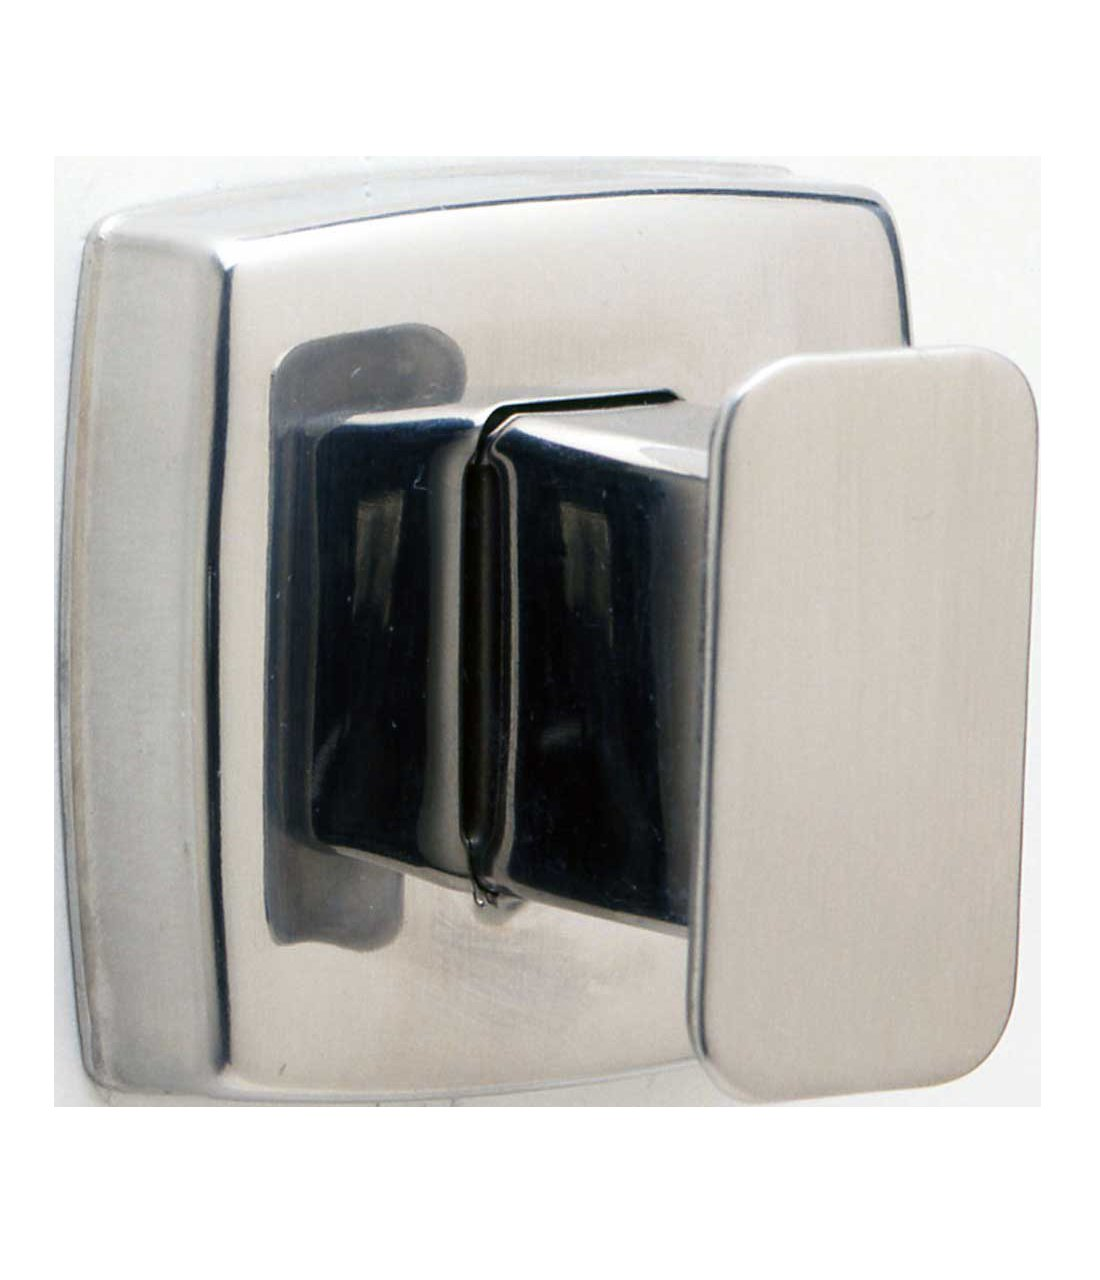 Bobrick 76717 Stainless Steel Surface Mounted Single Robe Hook, Satin Finish, 1-3/16'' Width x 1-5/8'' Height by Bobrick (Image #1)